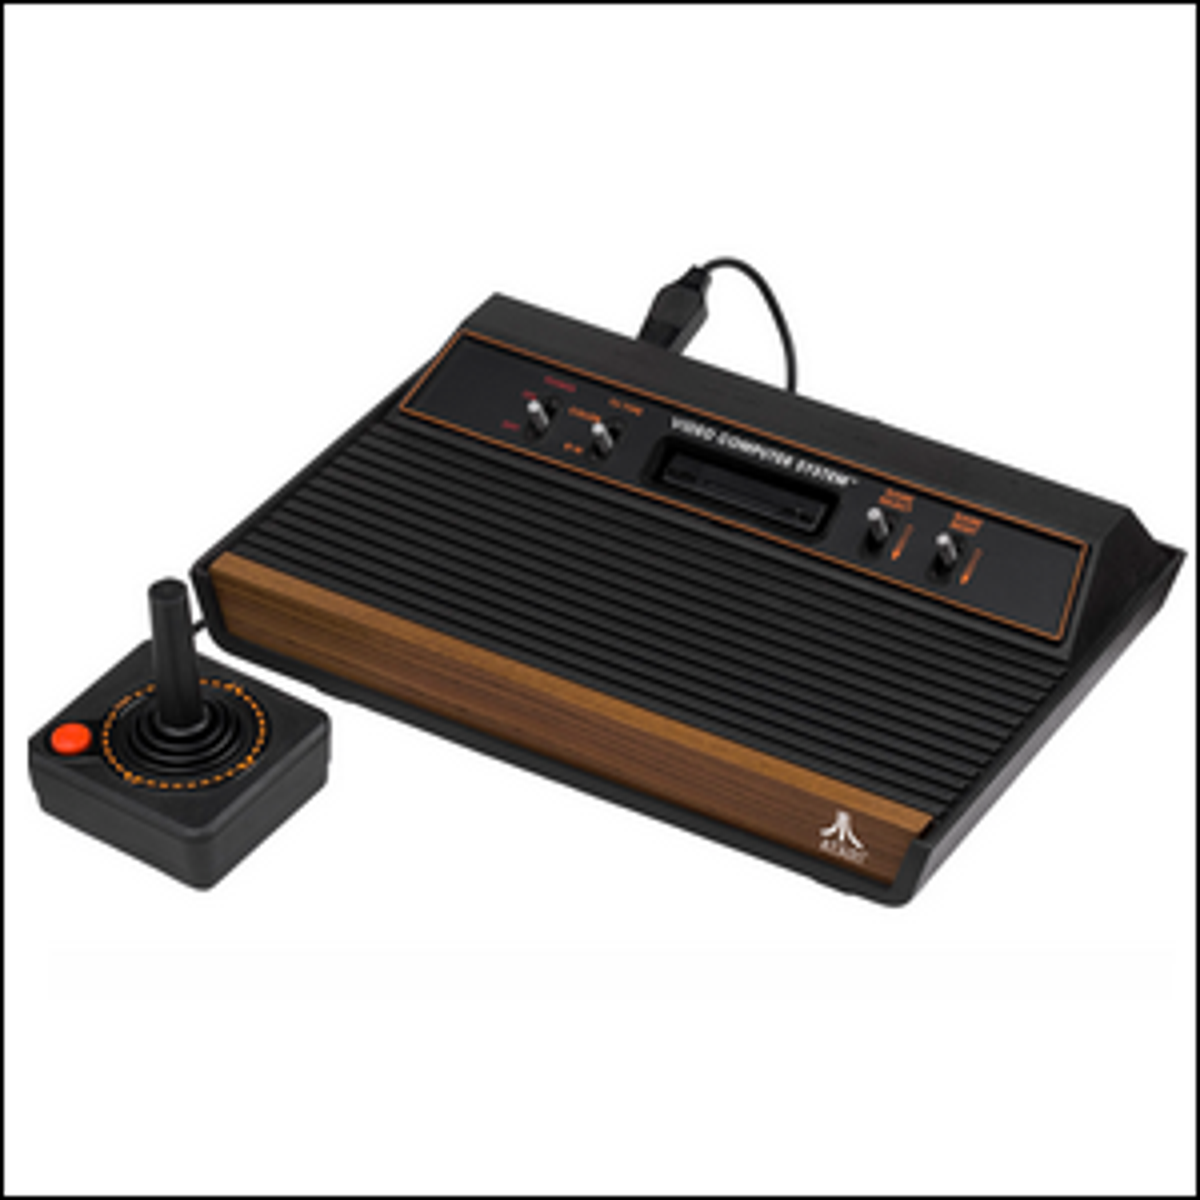 A 1980-1982 Atari 2600 four-switch console with a wood veneer and a standard joystick.